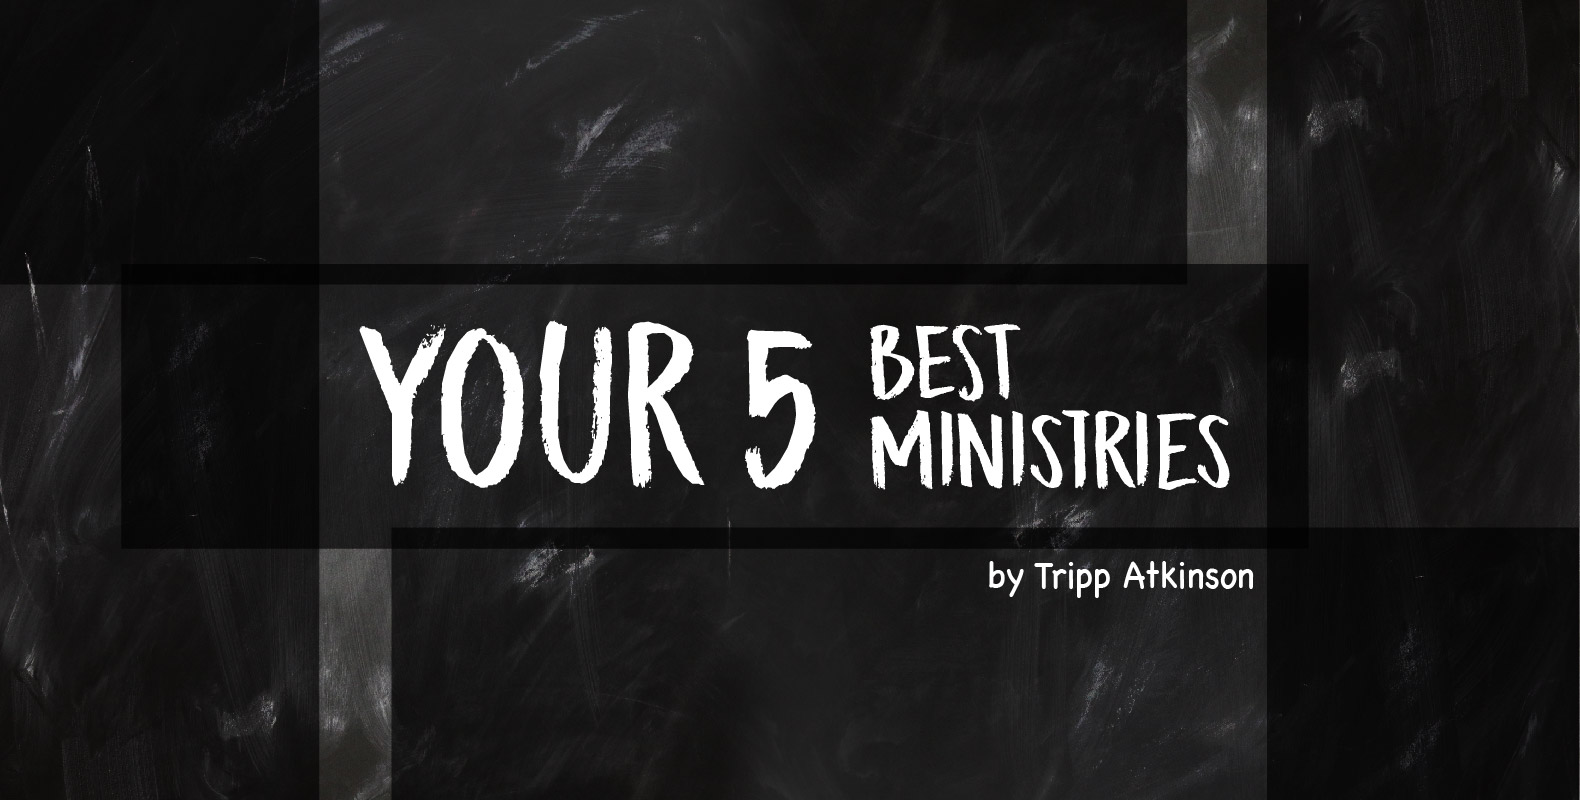 Your 5 Best Ministries by Tripp Atkinson